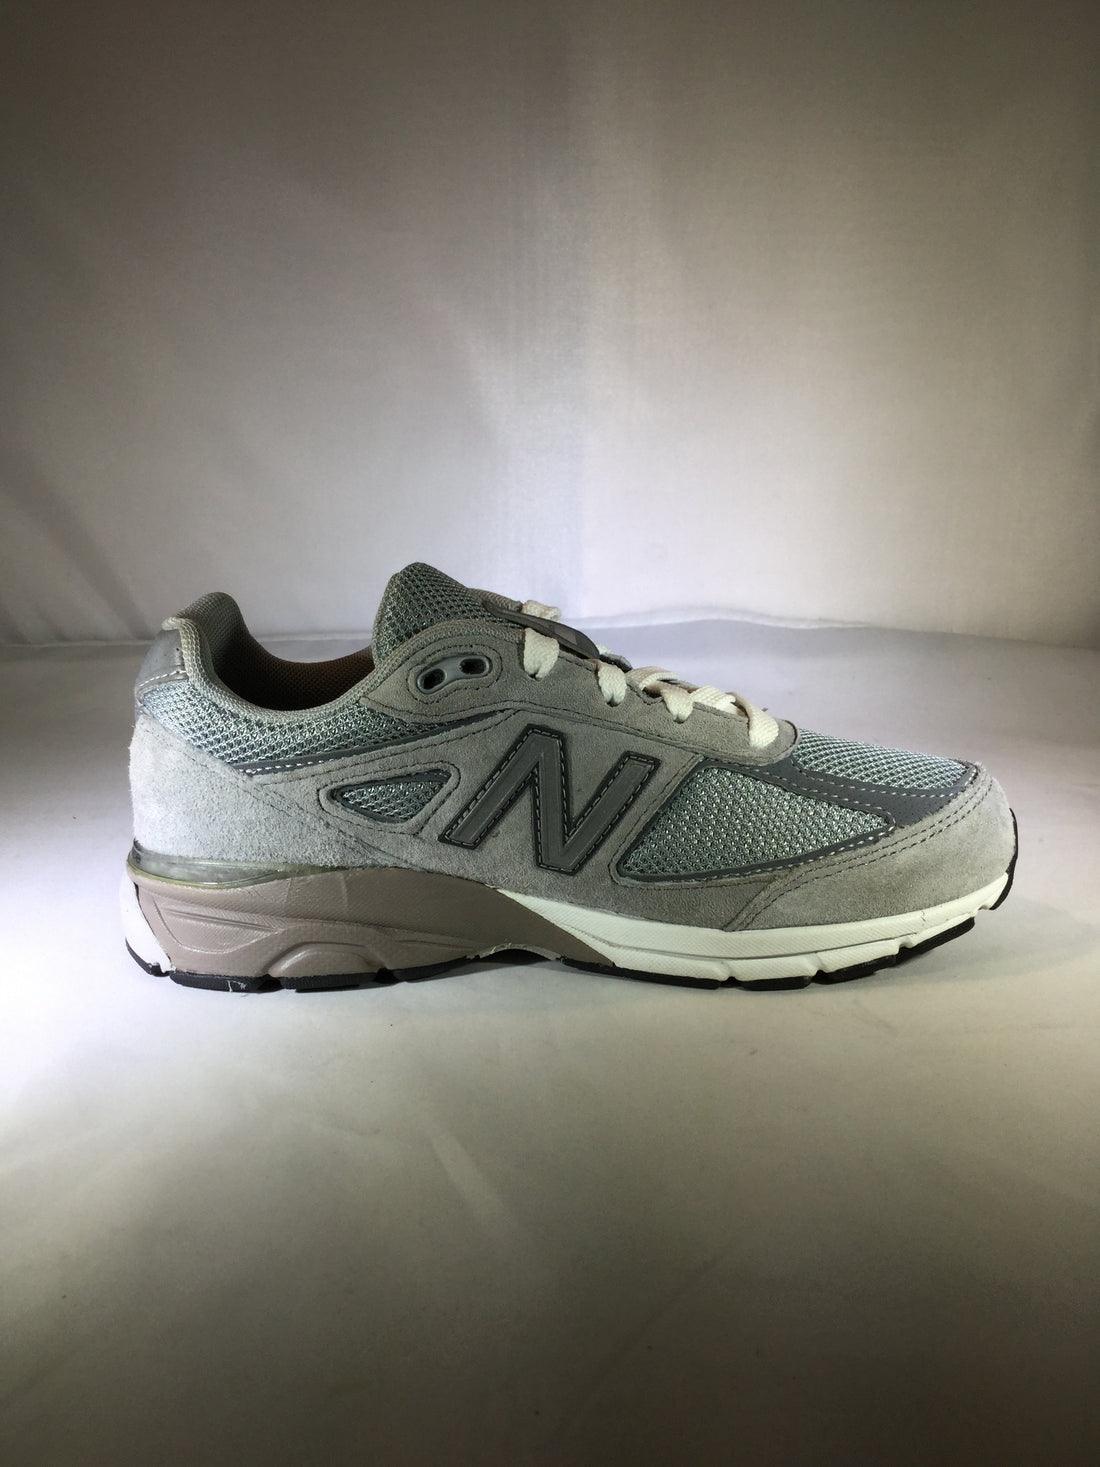 low priced b35af 31159 New Balance 990v4